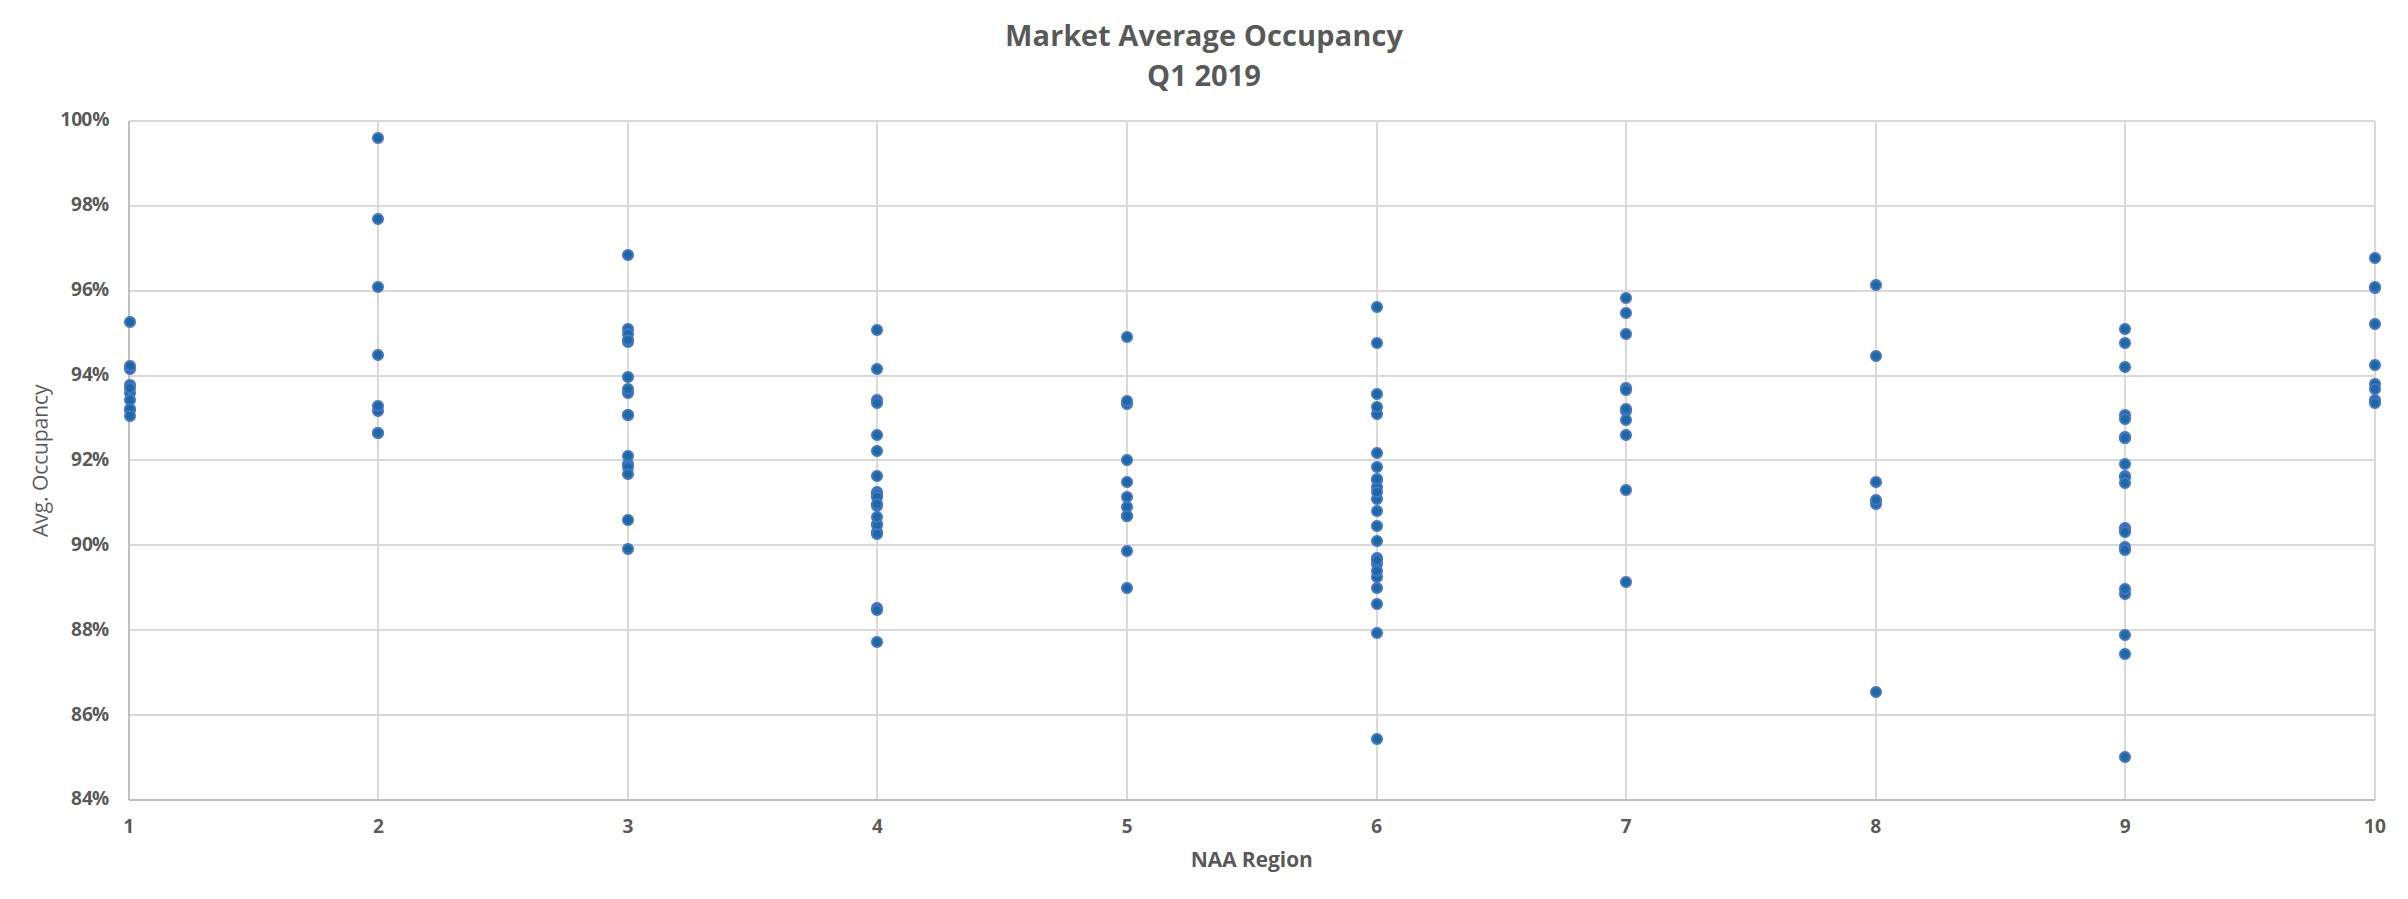 Chart depicting the Market Average Occupancy by NAA Region as of Q1 2019 for April 2019 ALN Apartment Data Newsletter